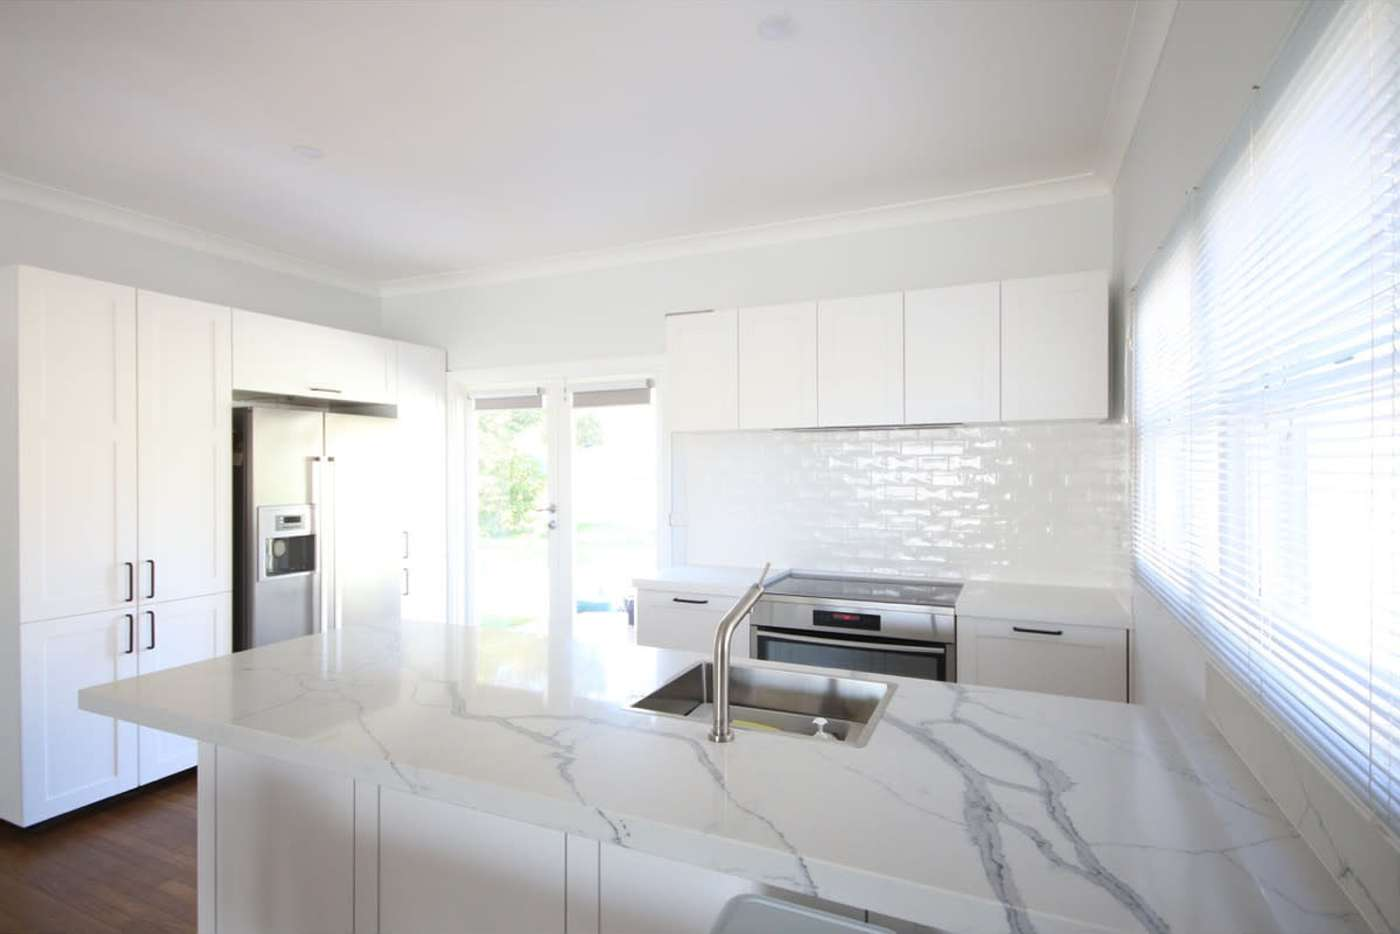 Main view of Homely house listing, 220 Walmer Avenue, Sanctuary Point NSW 2540